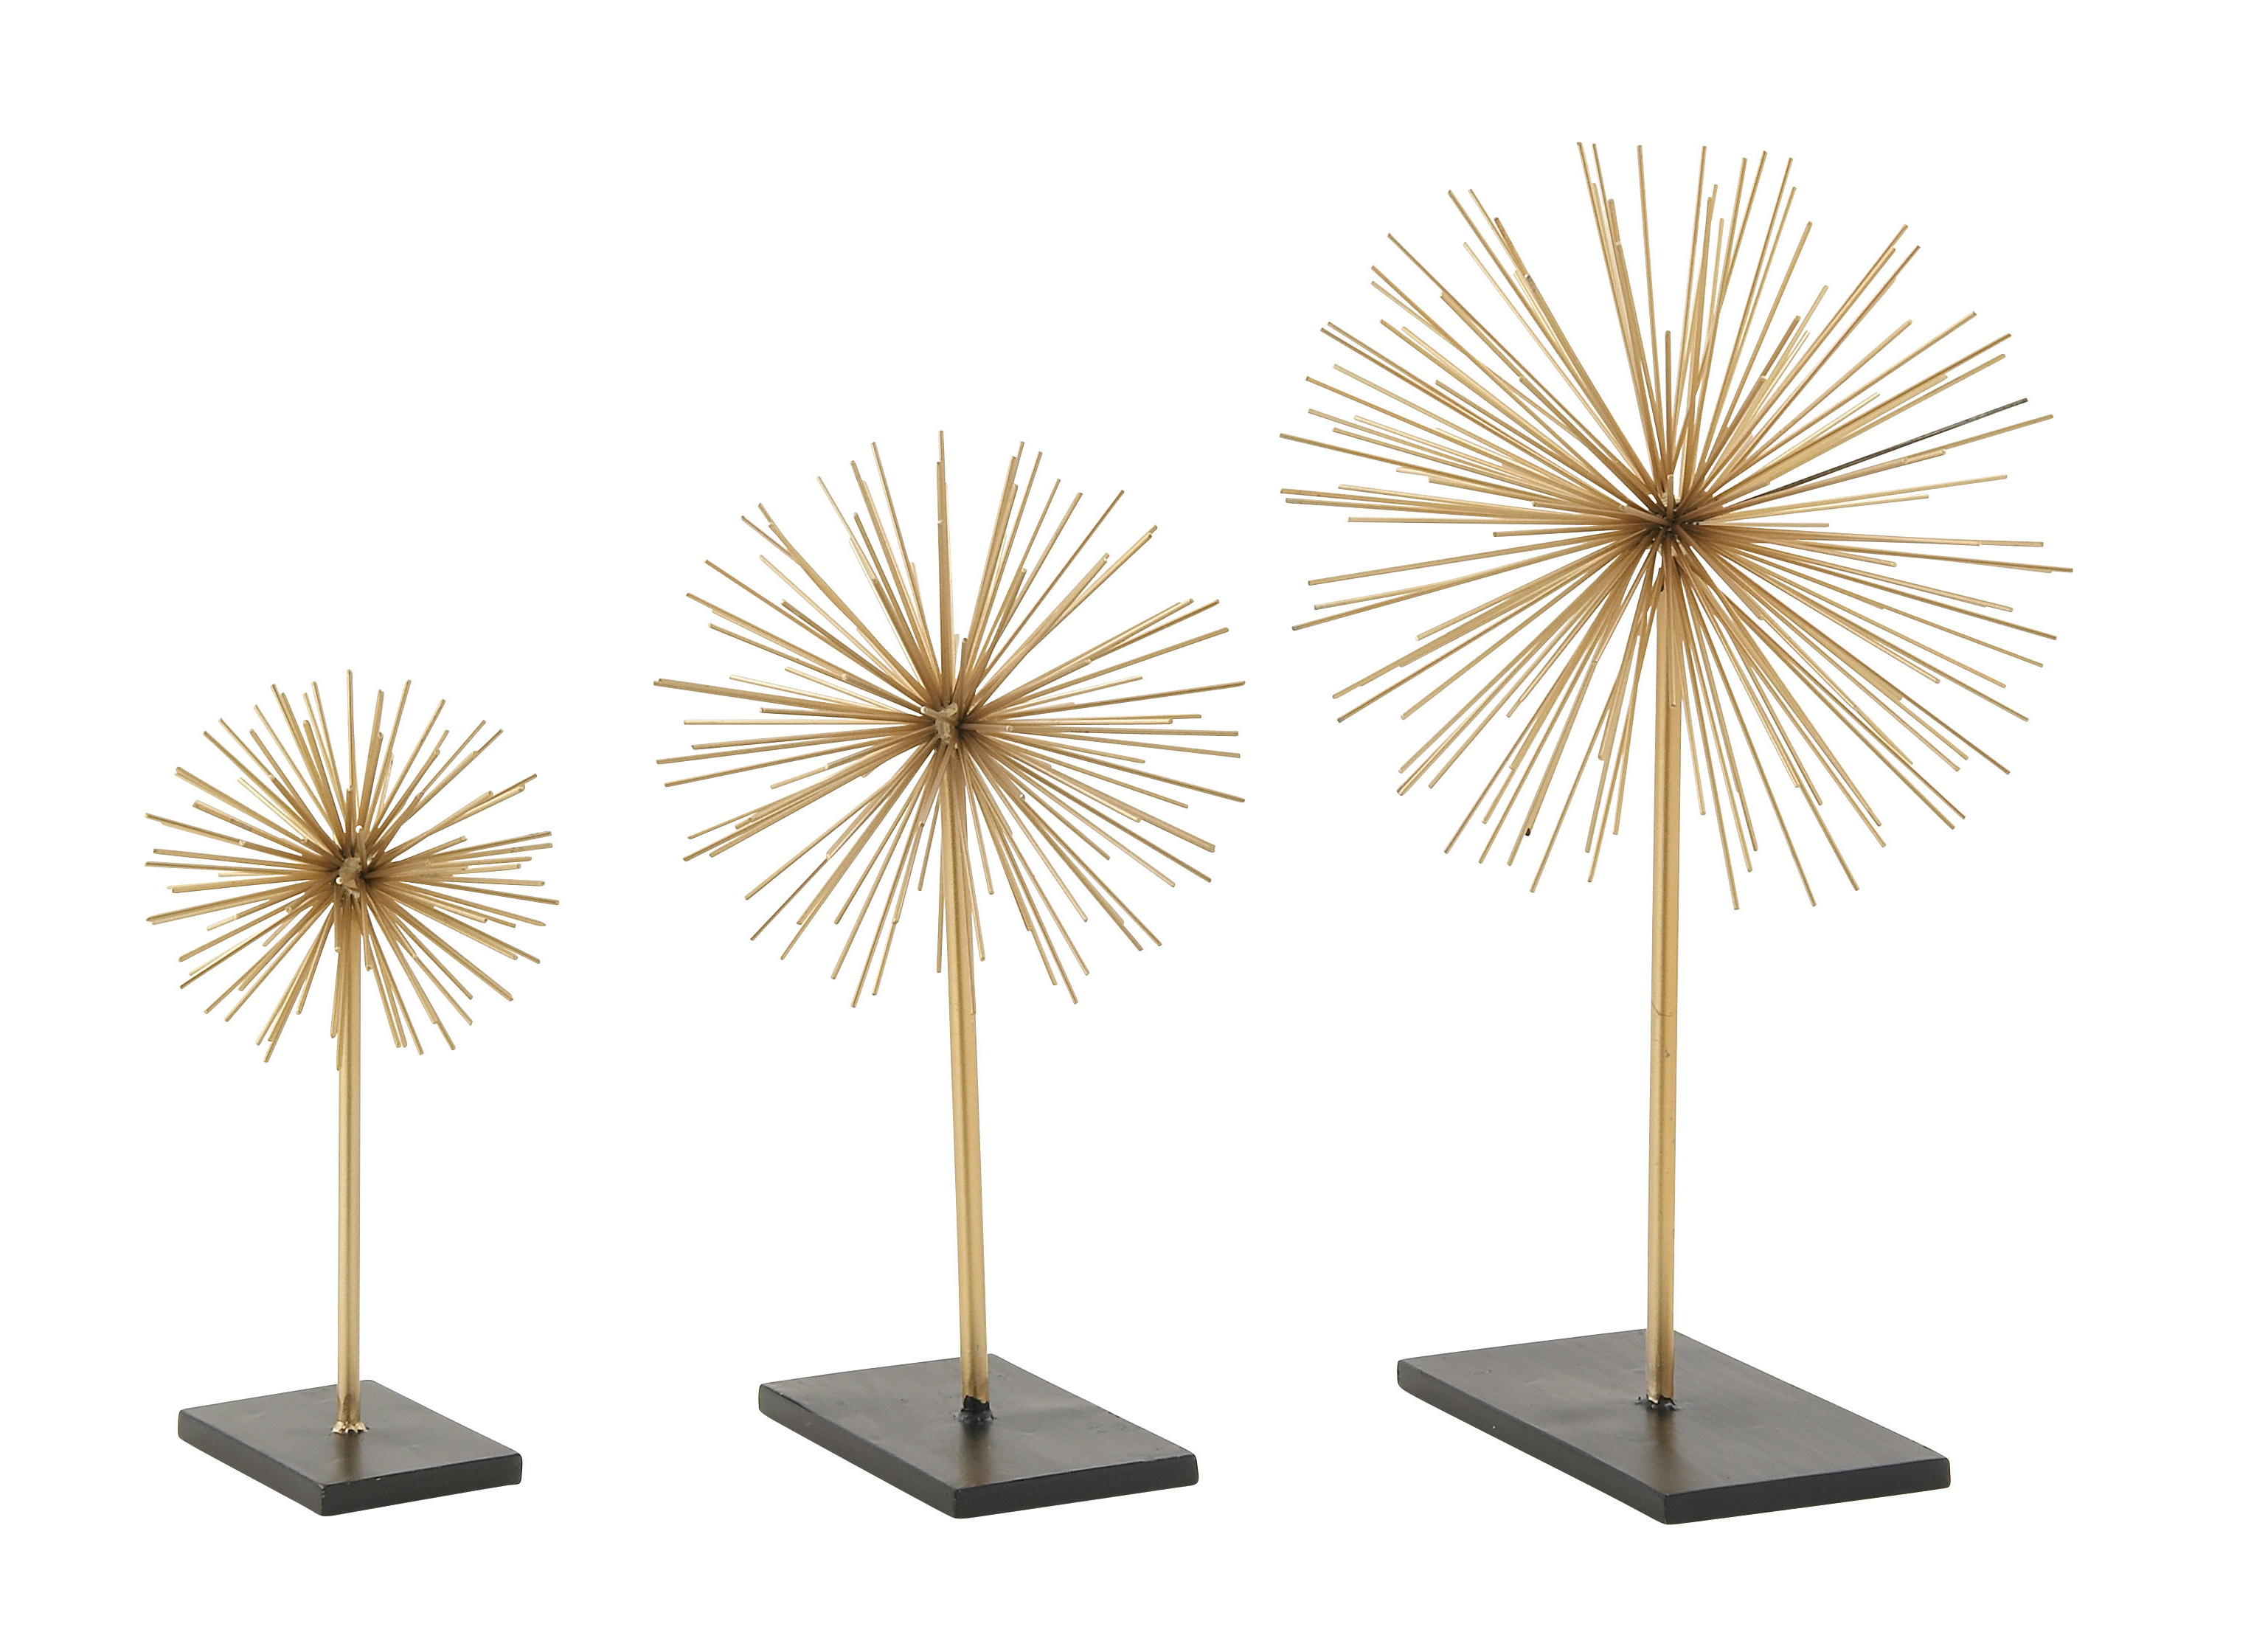 Cosmolivingcosmopolitan 3 Piece Metal 3D Star Sculpture Set Intended For 2019 Set Of 3 Contemporary 6, 9, And 11 Inch Gold Tin Starburst Sculptures (View 7 of 20)